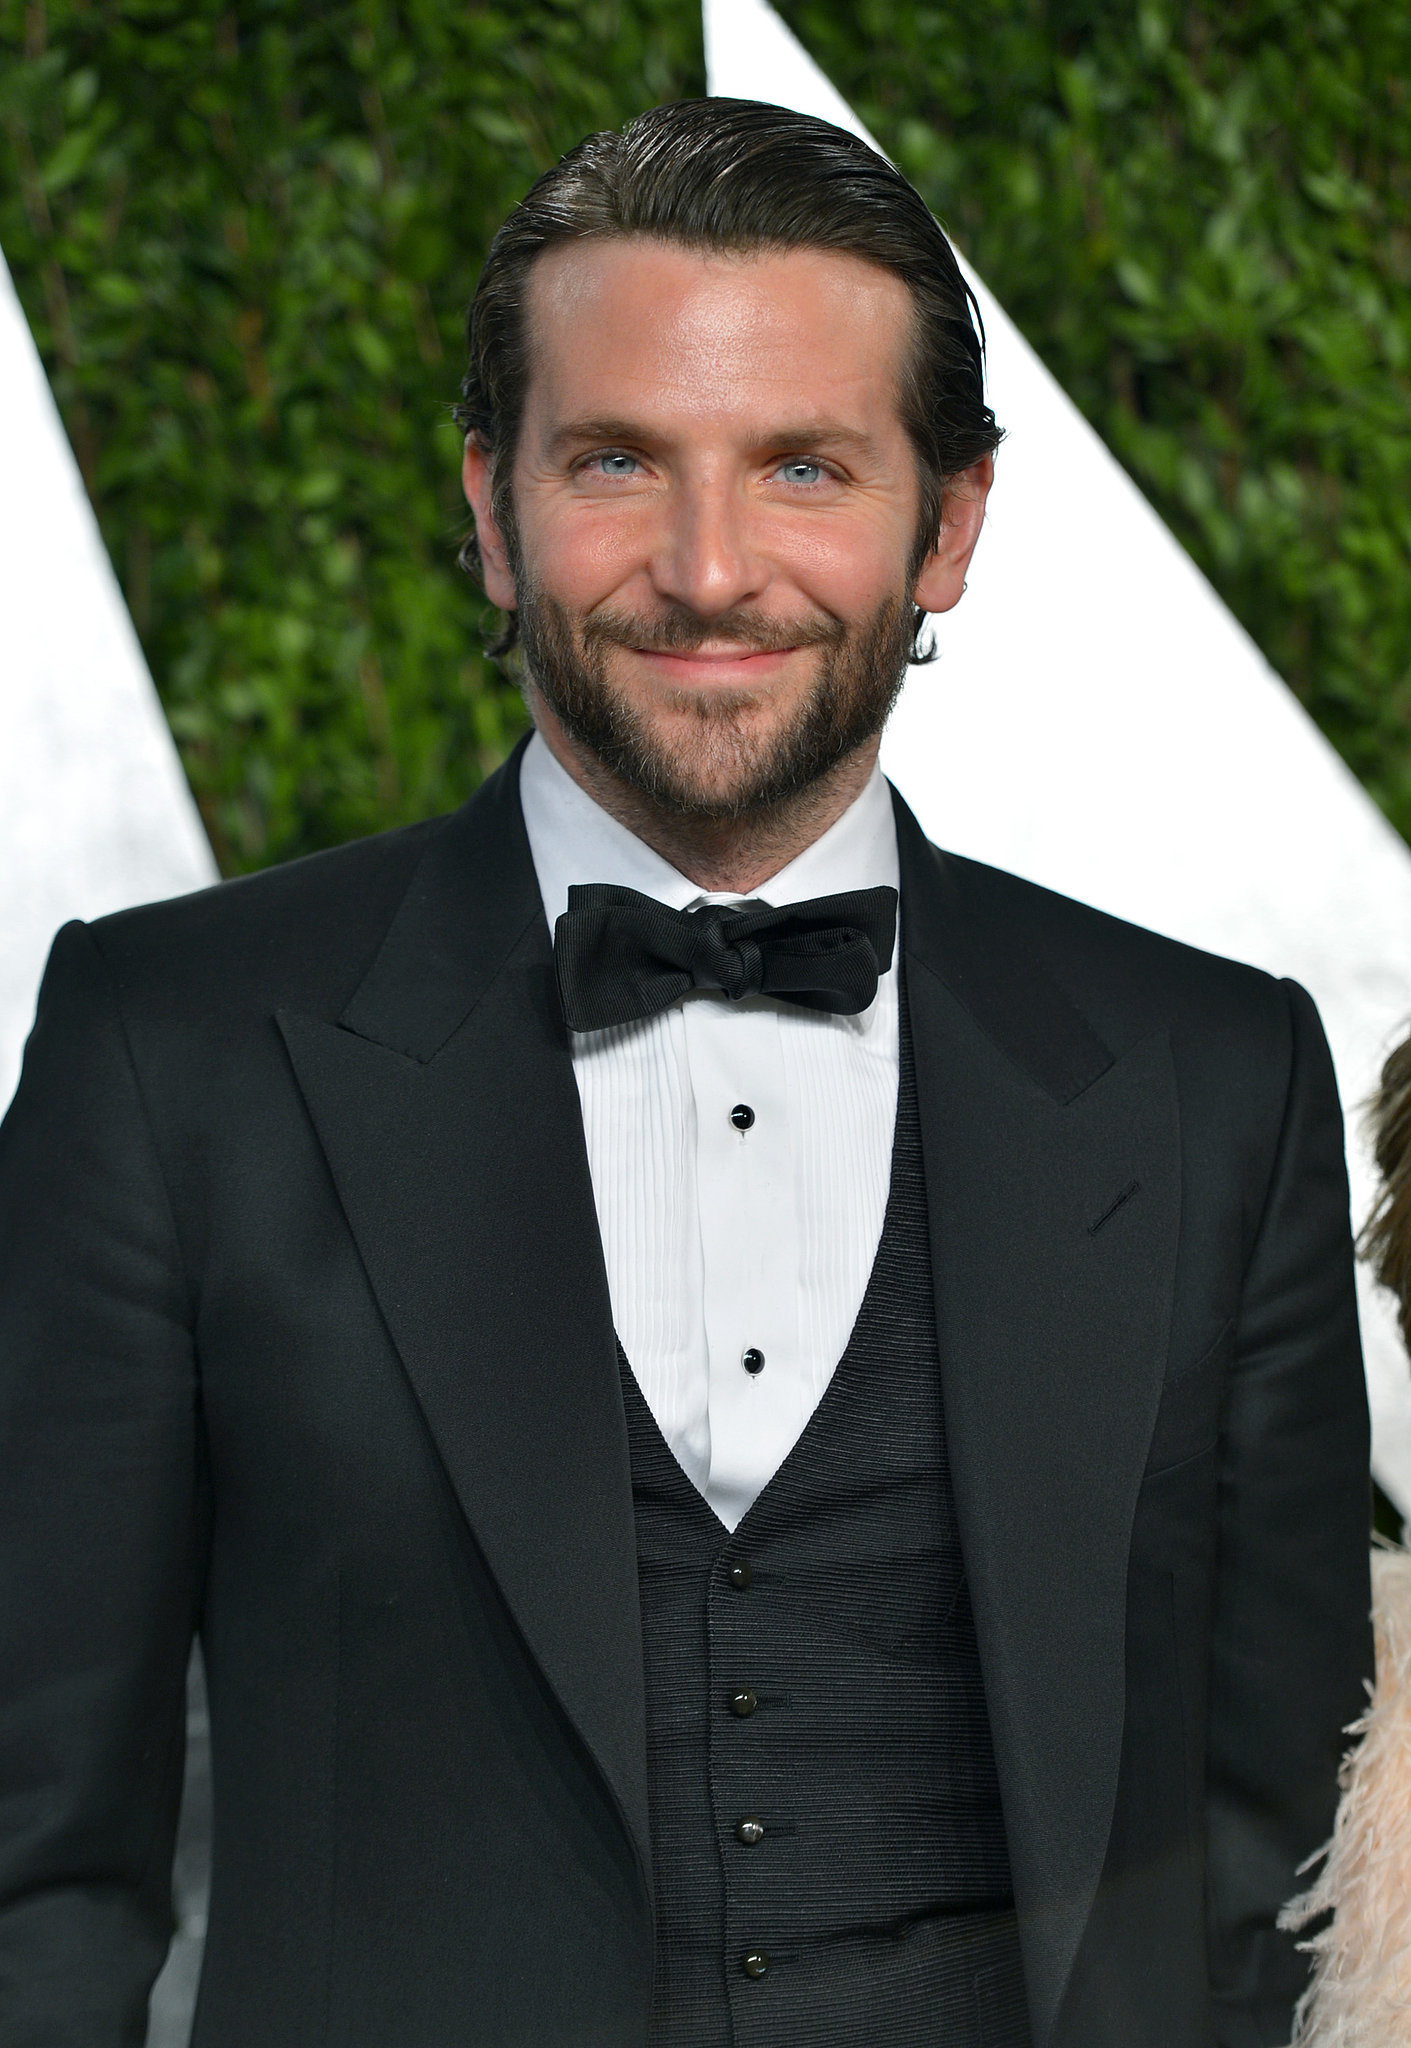 At the 2013 Academy Awards, Bradley slicked back his long strands and sported some sexy scruff.